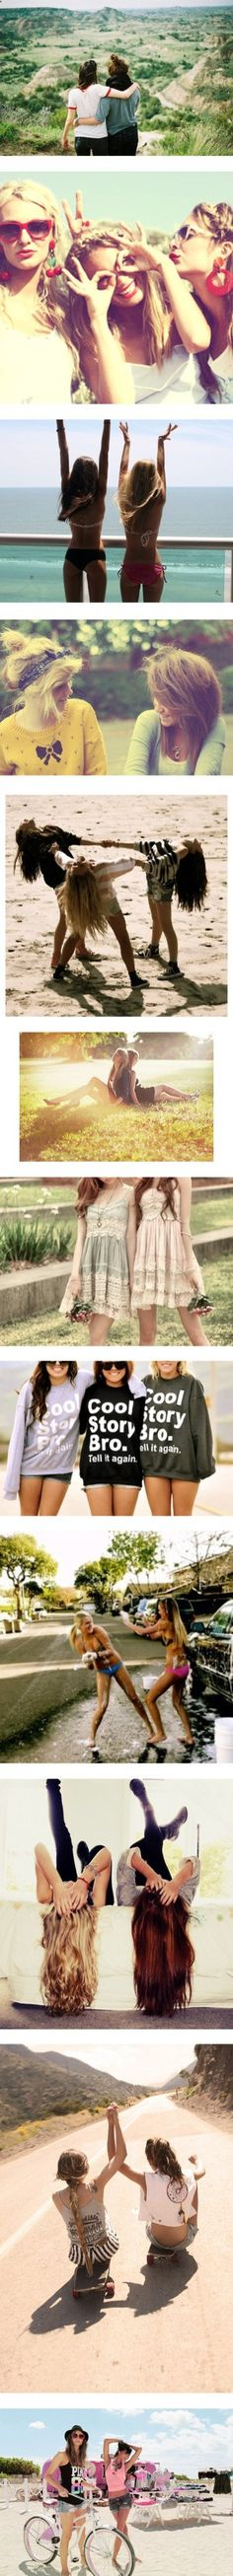 Tan skin; crazy days; late nights: Summer 2012 by lovelylifedarling  liked on Polyvore